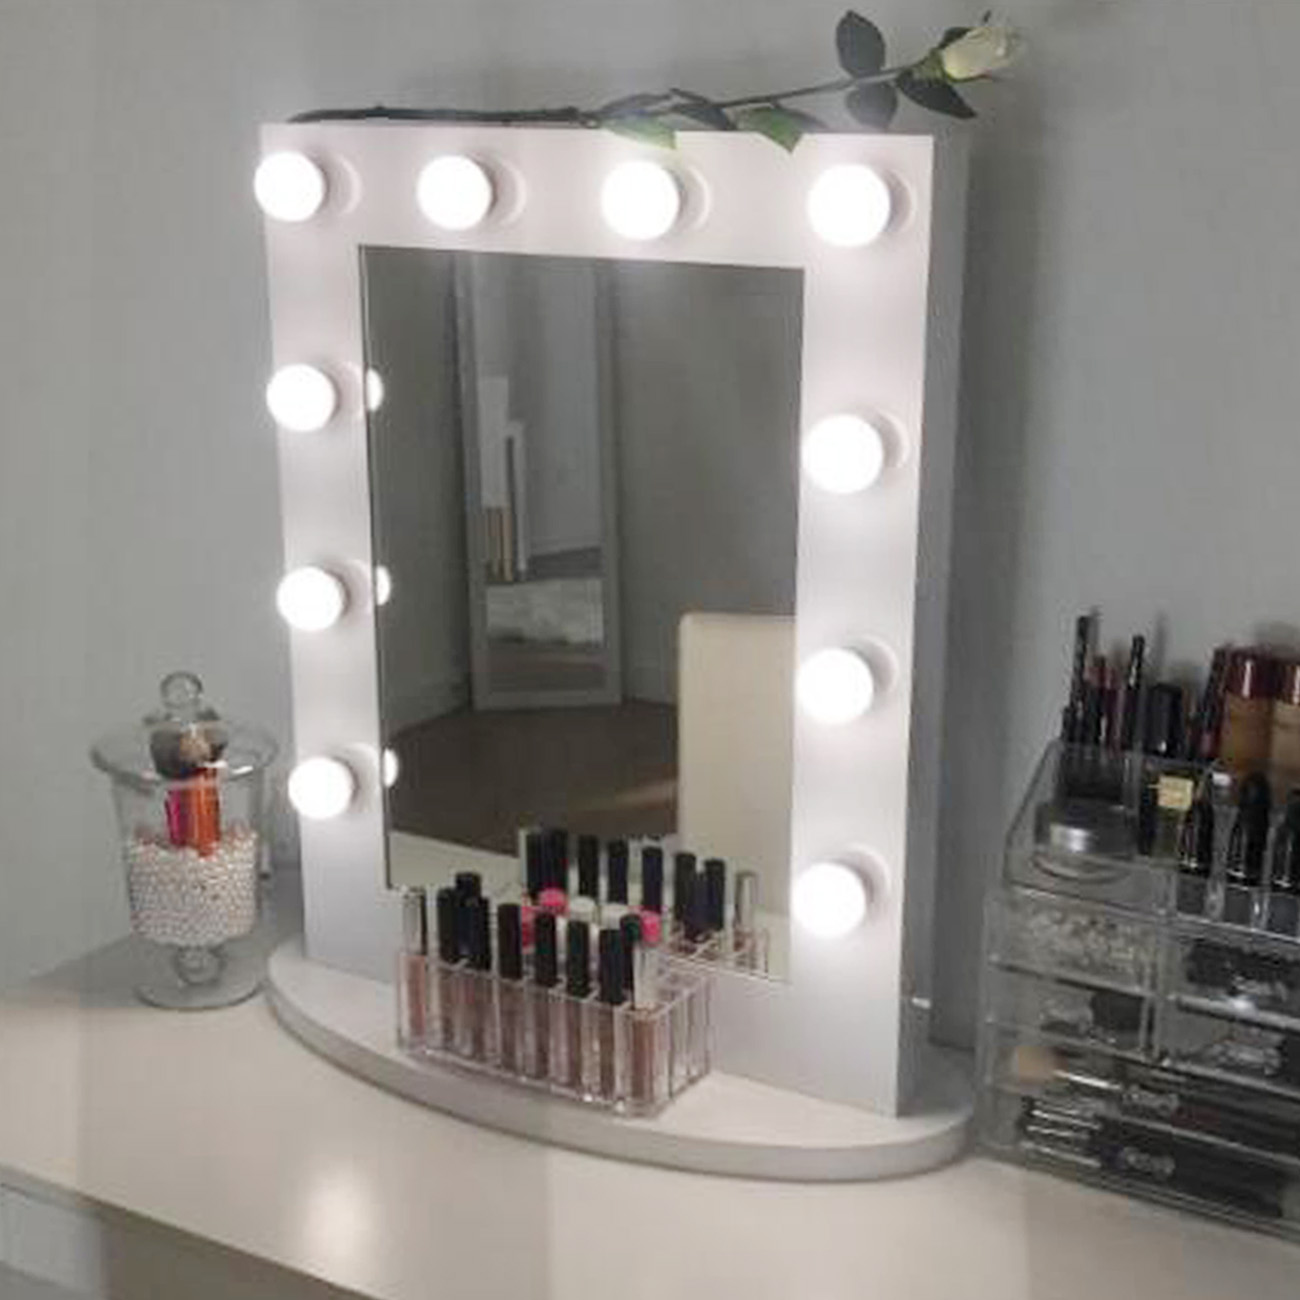 Vanity Girl Hollywood Light Up Mirror : White Hollywood Makeup Vanity Mirror with Light Aluminum Mirror Christmas Gift eBay